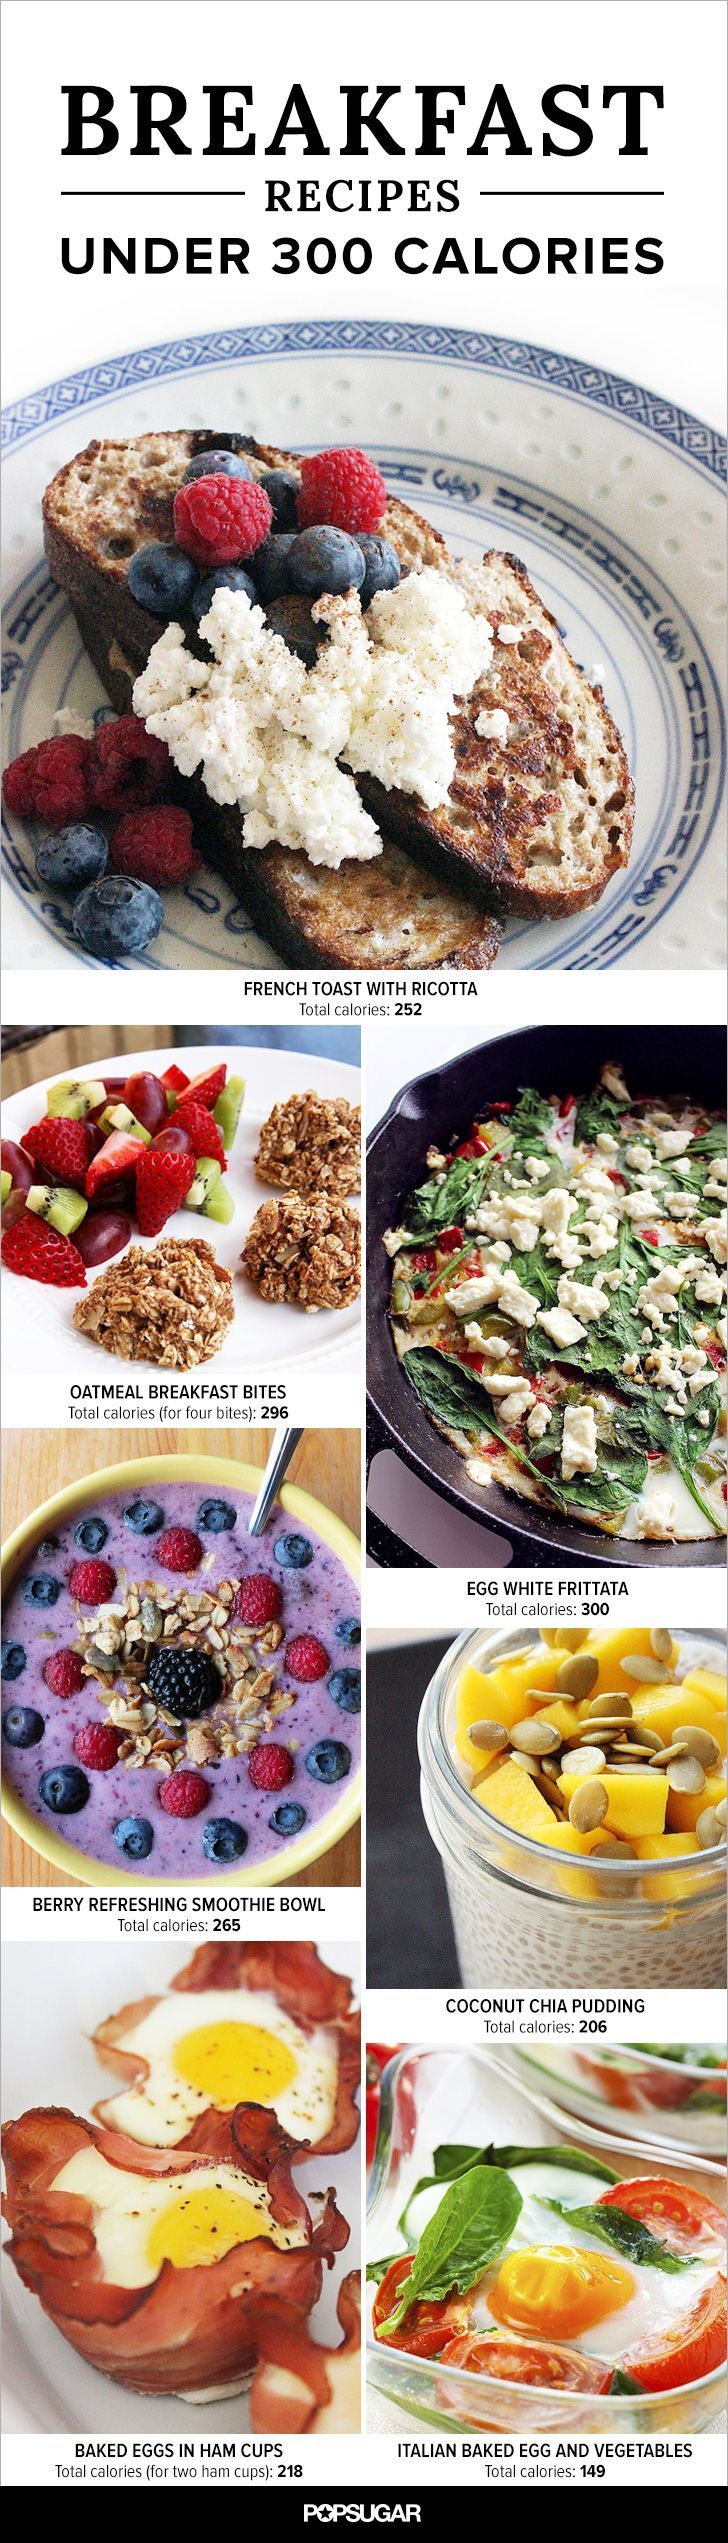 18 Satisfying Breakfasts Under 300 Calories: Looking for a low-calorie breakfast that doesn't disappoint? These 18 light recipes all clock in under 300 calories and will keep you satisfied and energized until your next snack or meal.